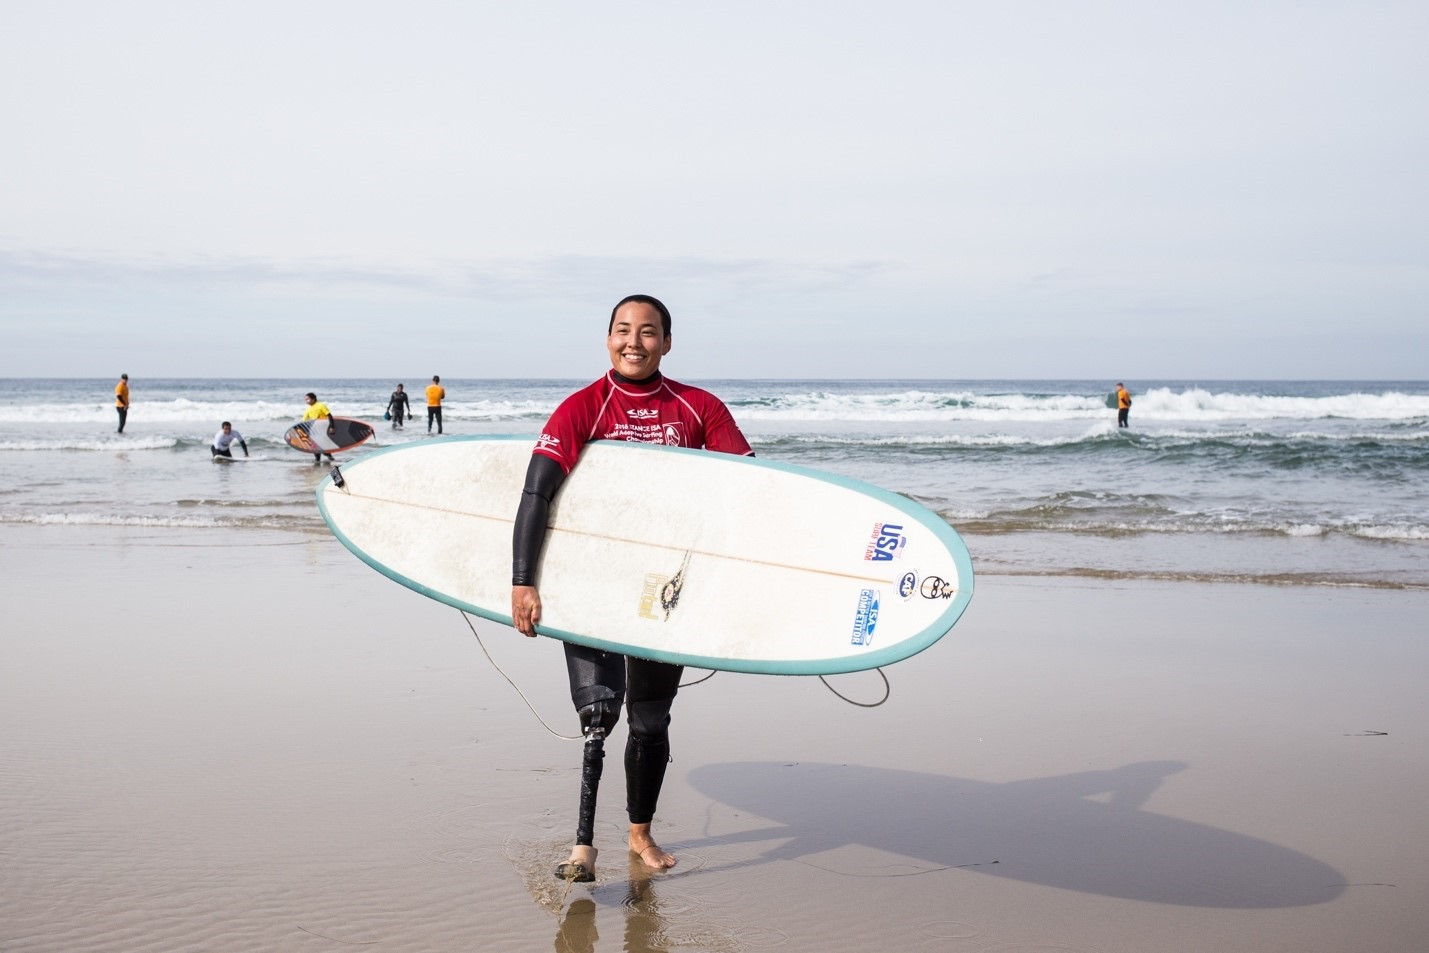 ISA continue campaign for Paralympic inclusion at Paris 2024 with women's division at World Adaptive Surfing Championship